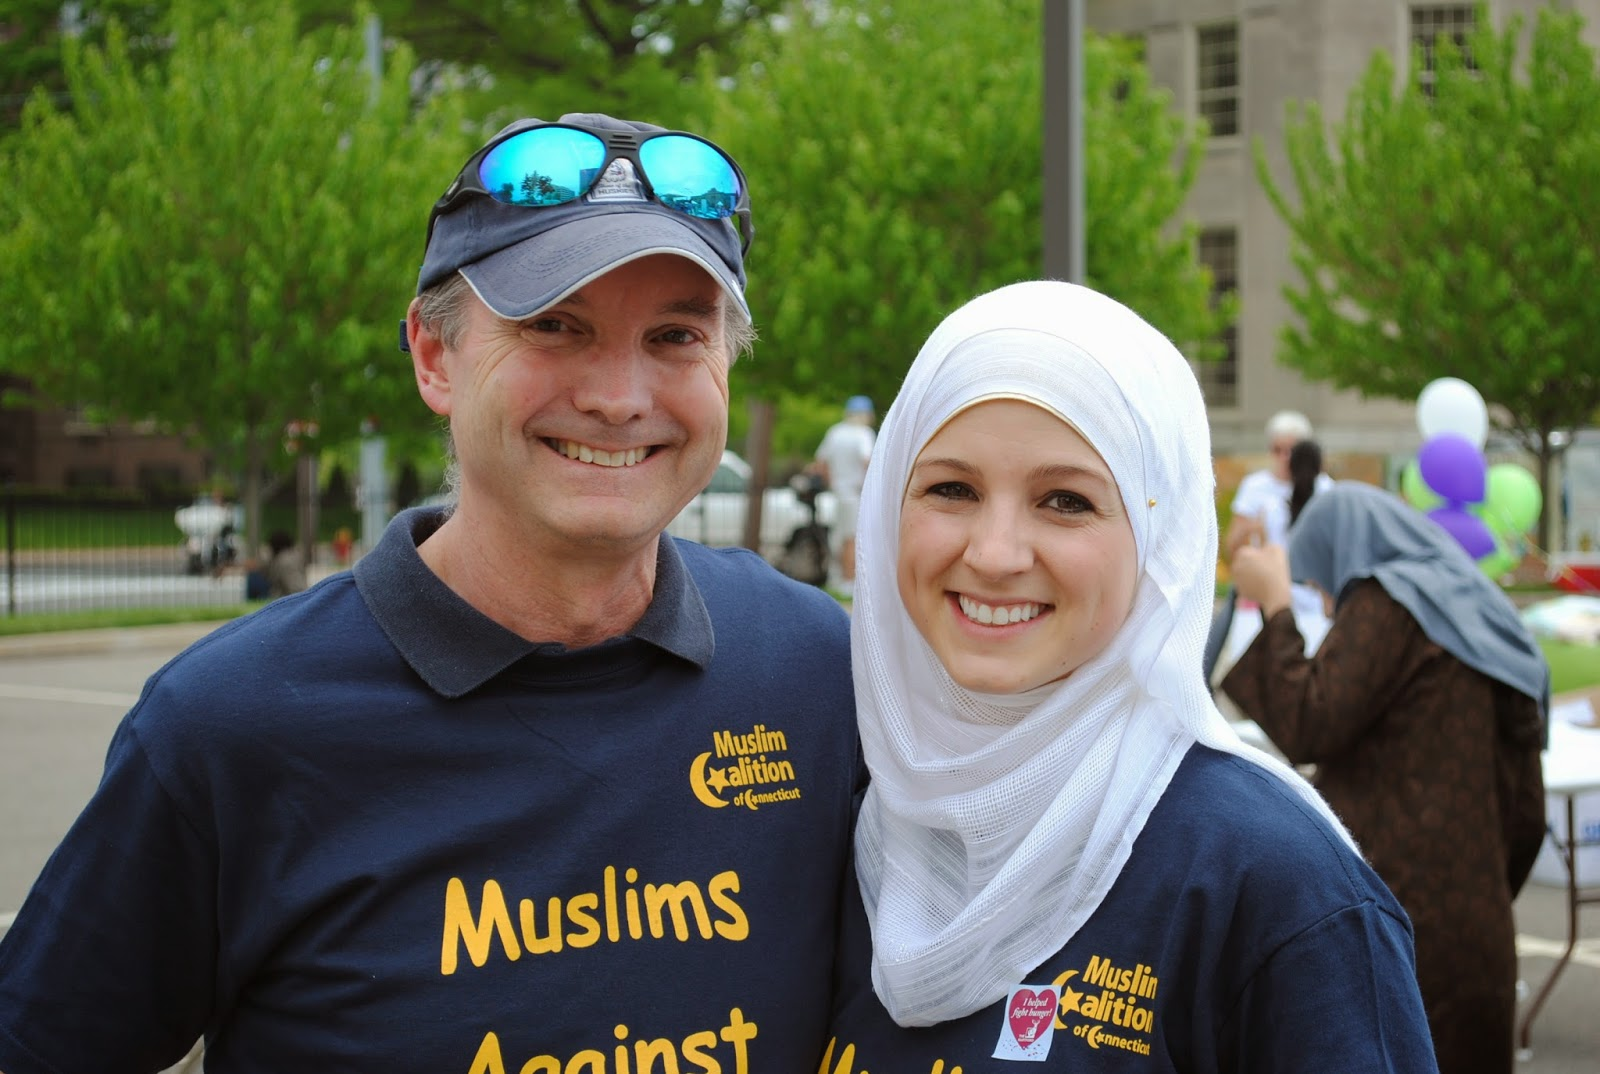 converted muslim dating site Welcome to the simplest online dating site to date, flirt, or just chat with muslim singles it's free to register, view photos, and send messages to single muslim men and women in your area one of the largest online dating apps for muslim singles on facebook with over 25 million connected singles, firstmet makes it fun and easy for mature adults to.